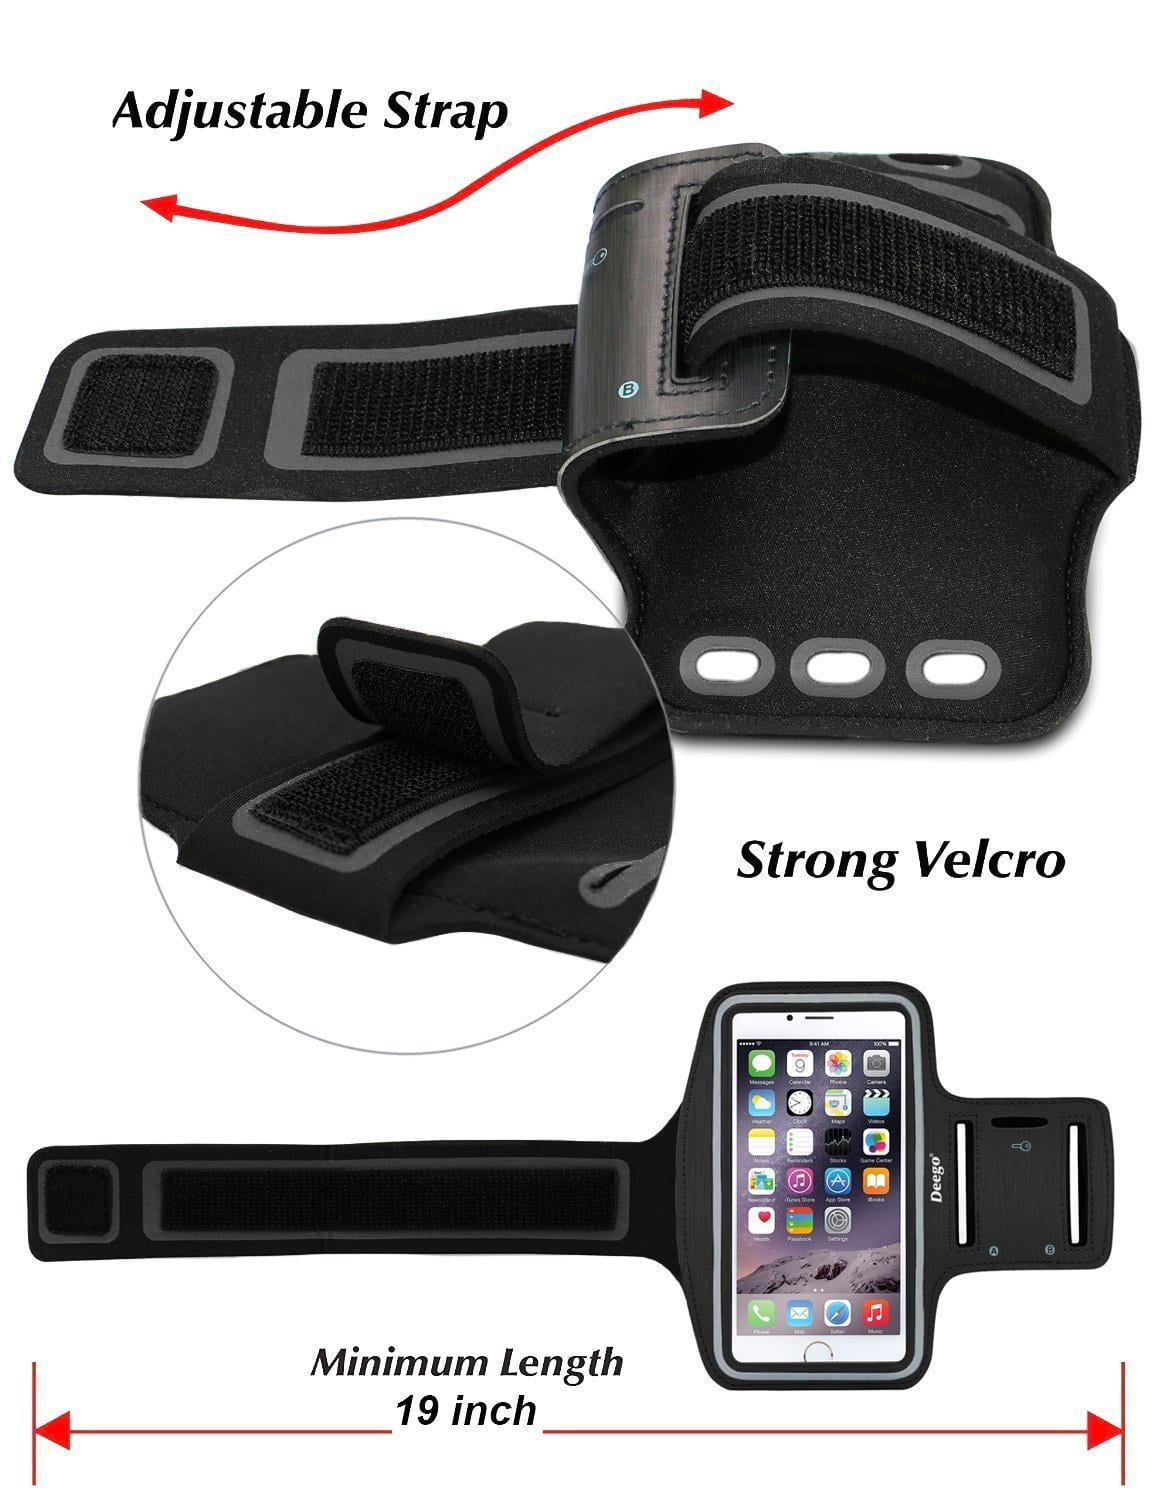 5.5-Inch Water Resistant Cell Phone Armband with Adjustable Velcro & key Holder $3.99AC+FS